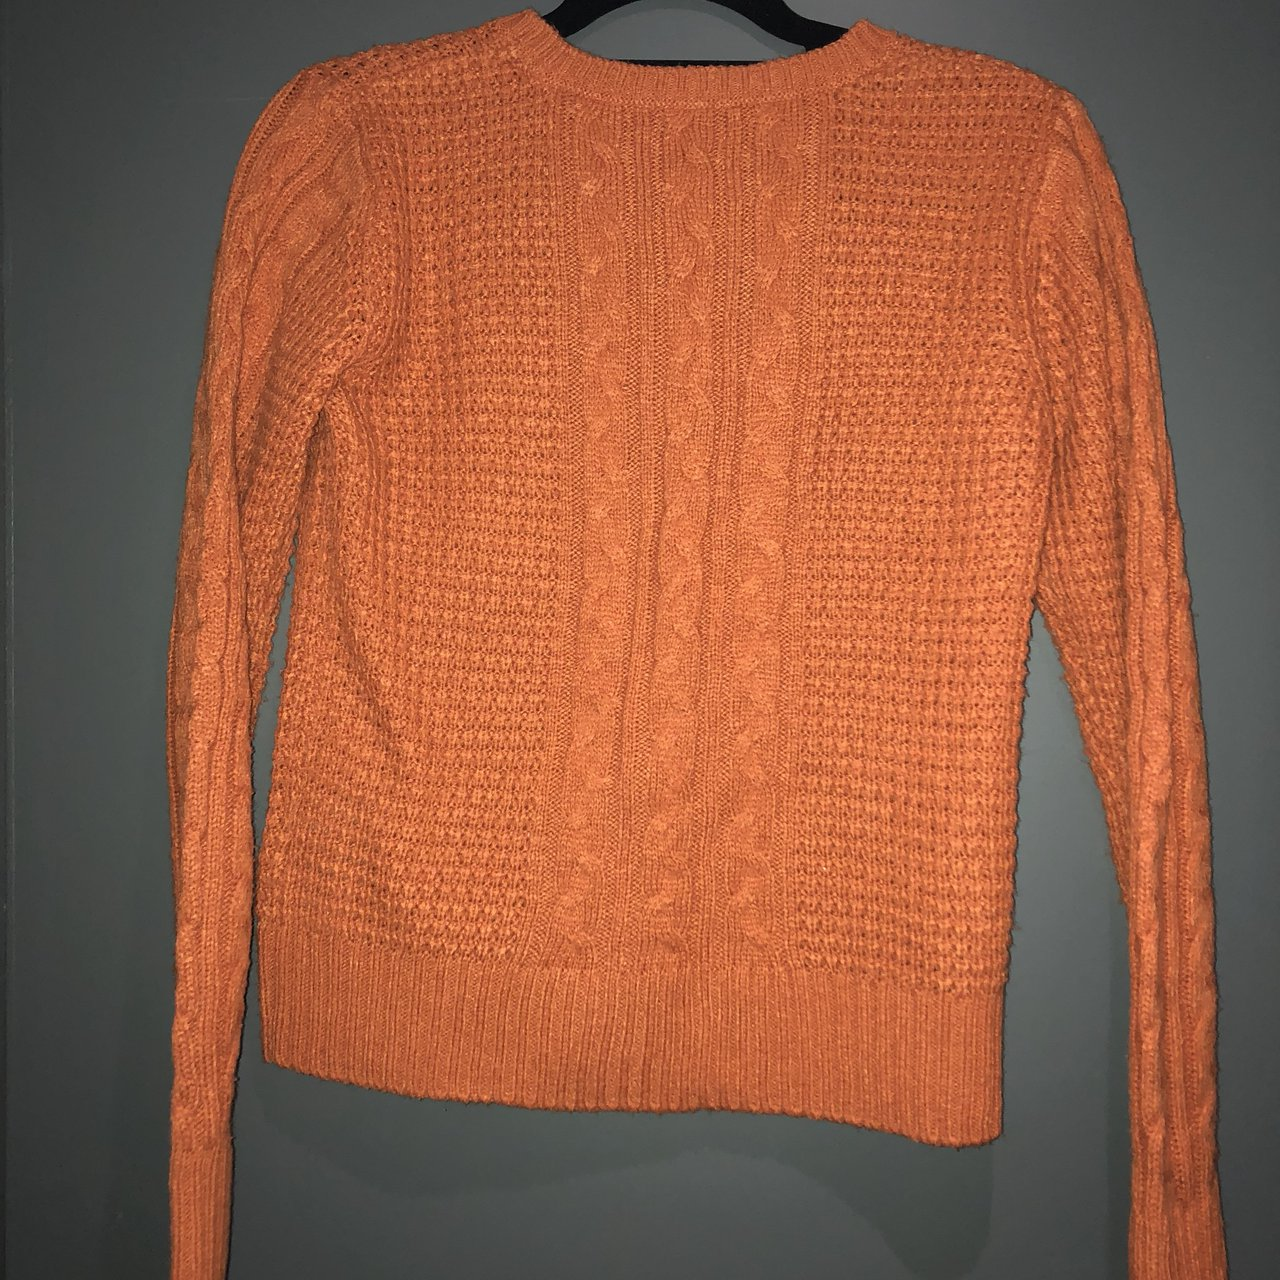 Burnt orange thick knit jumper Size M Would for 10-12 good - Depop 7b46bba5f